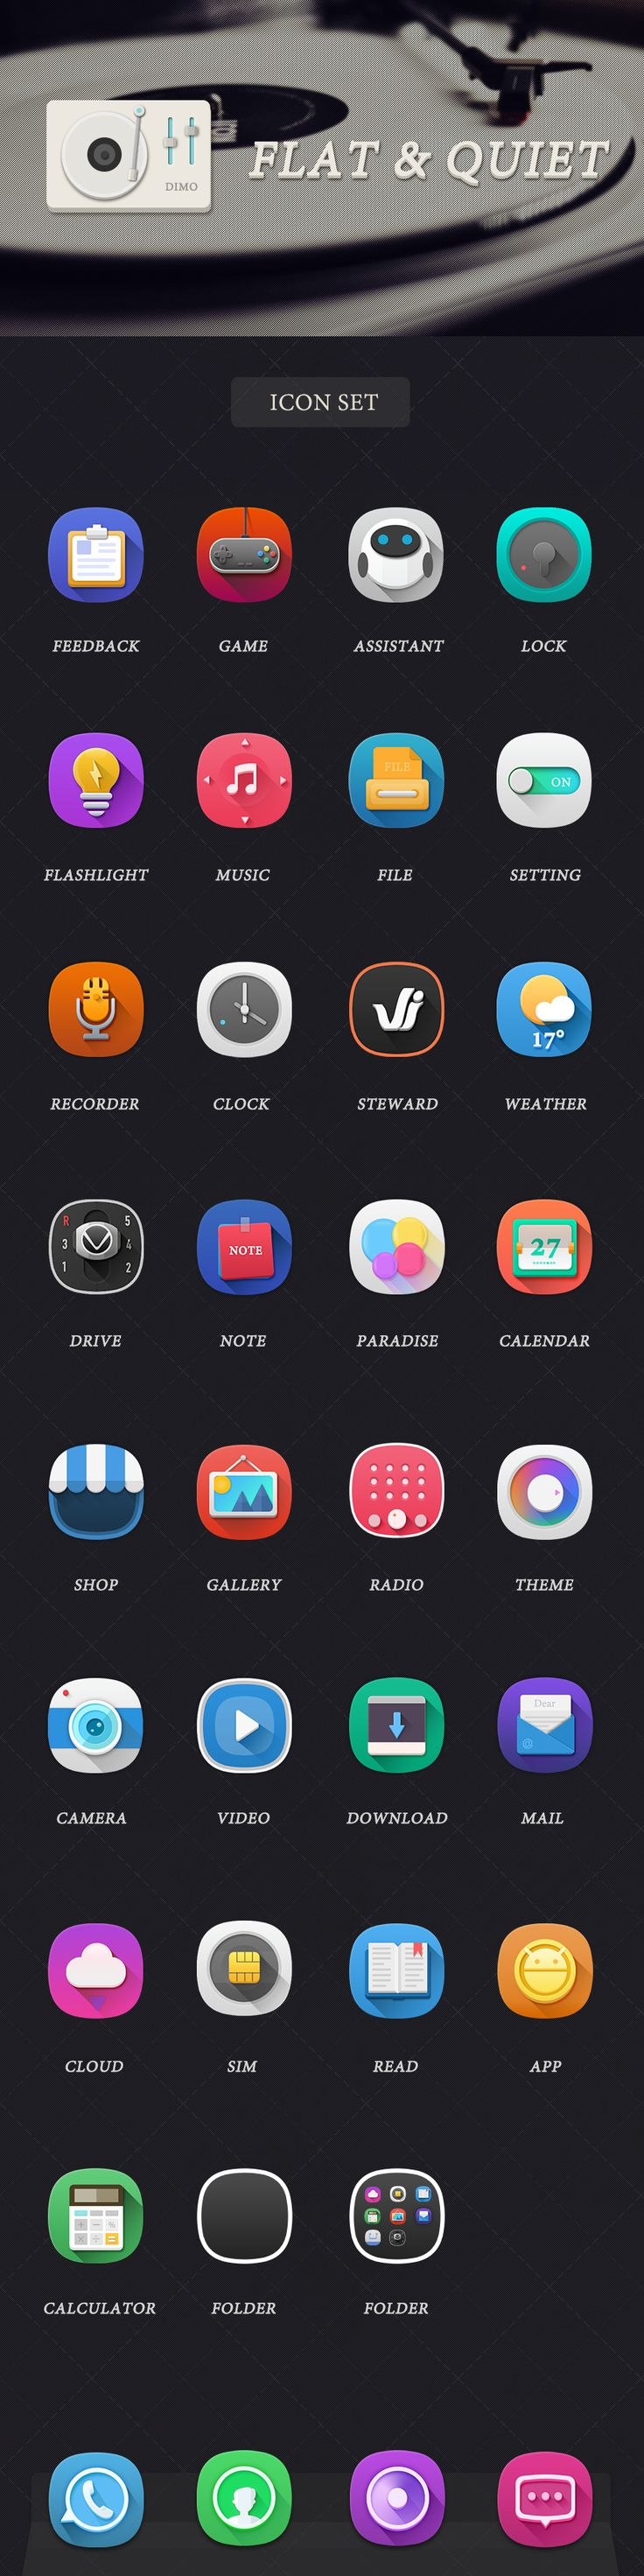 These icons are very clean and sharp looking. They aren't as in your face as others icon designs and they have a feel of refinement to them.